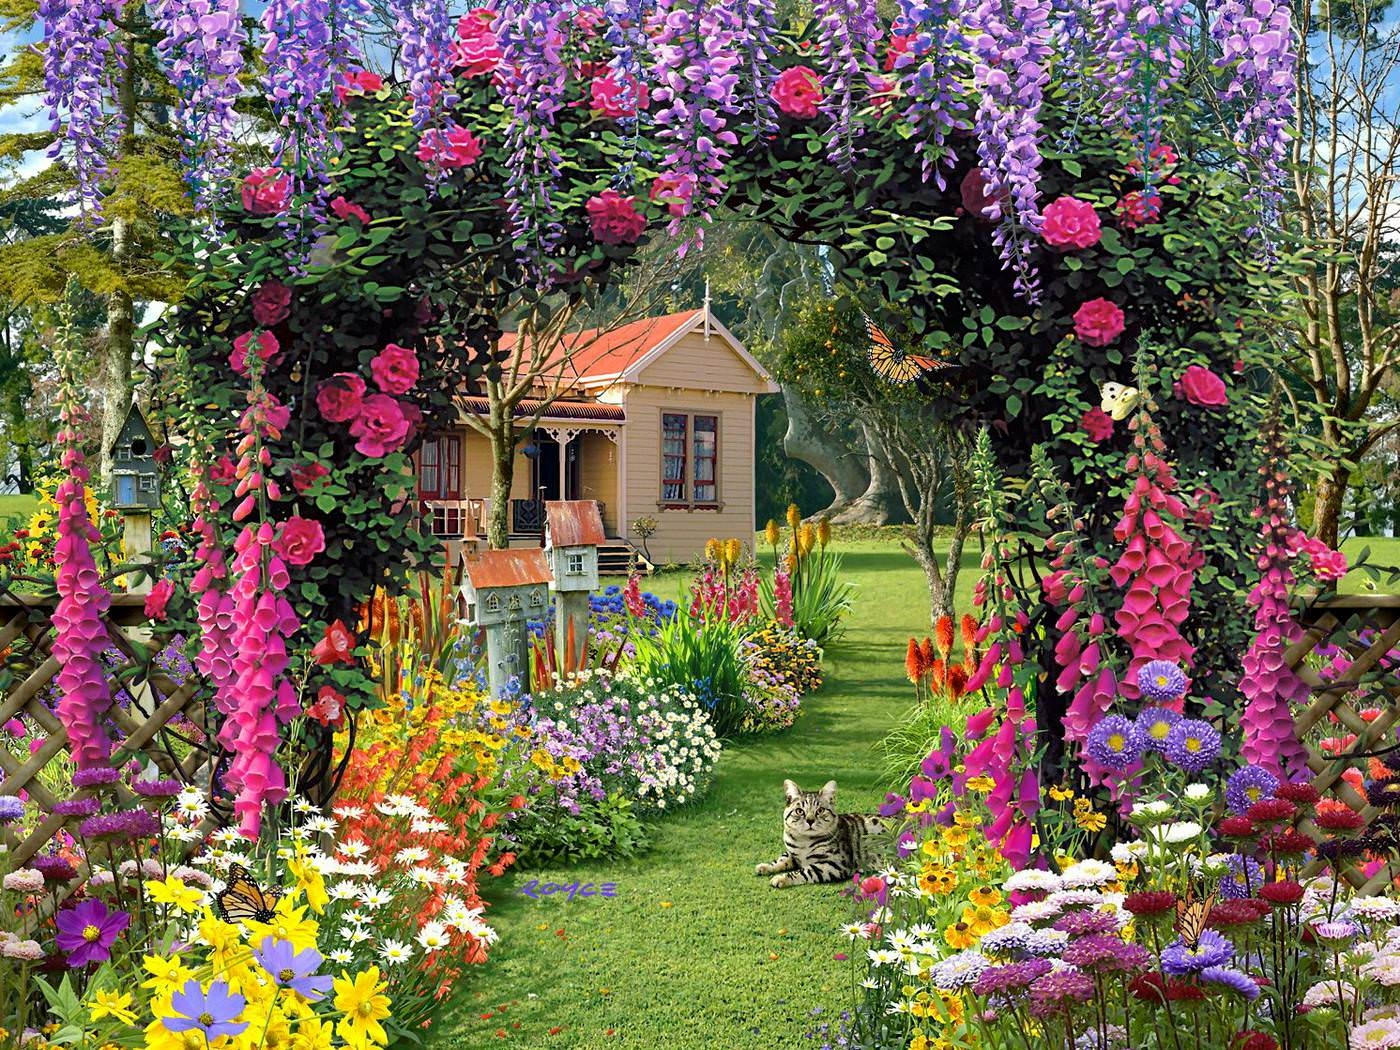 Rose cottage PArk Wallpaper